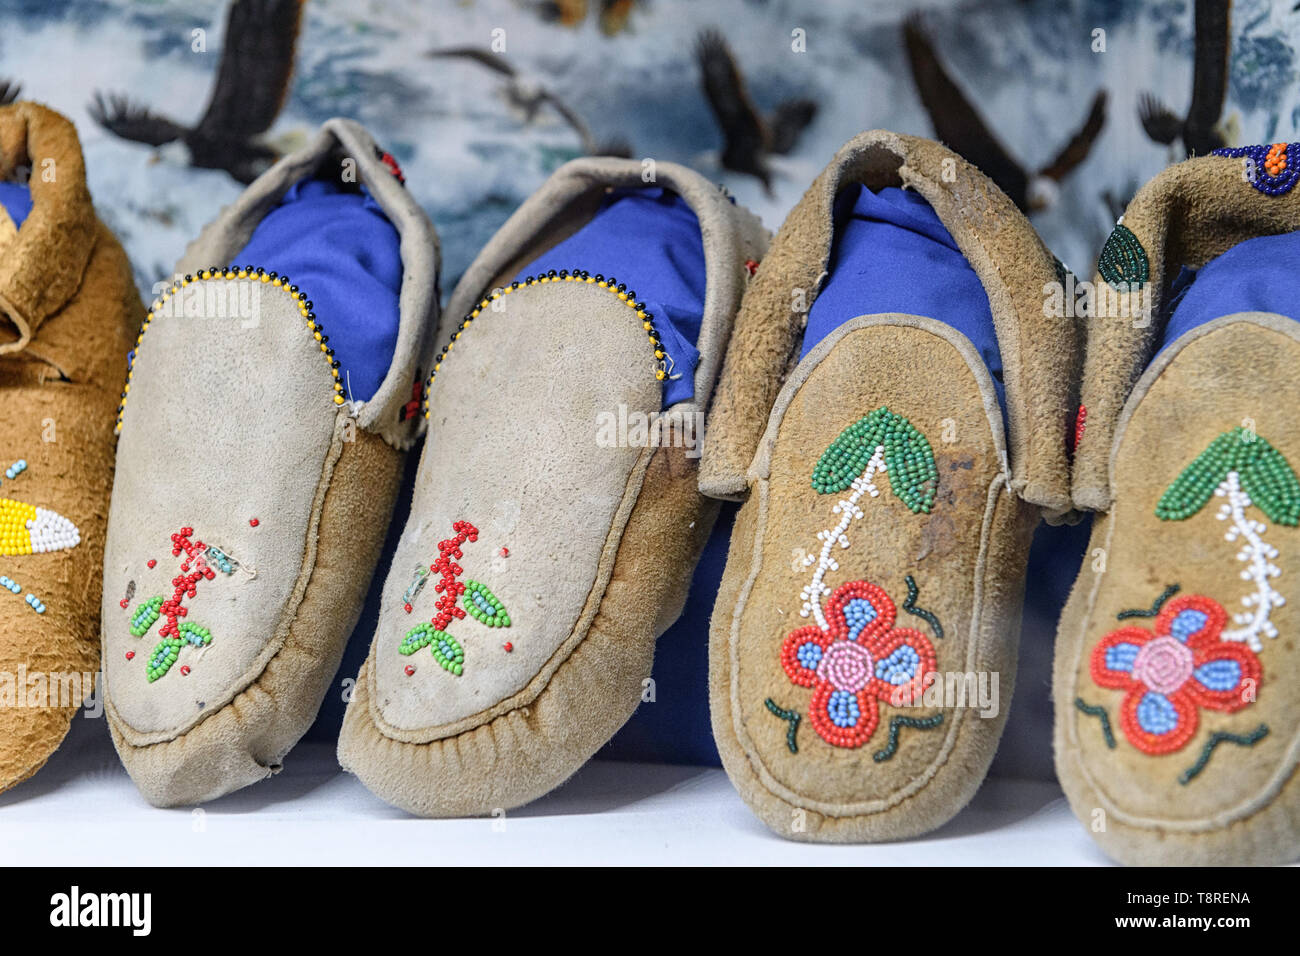 first-nations-moccasins-on-display-T8RENA.jpg